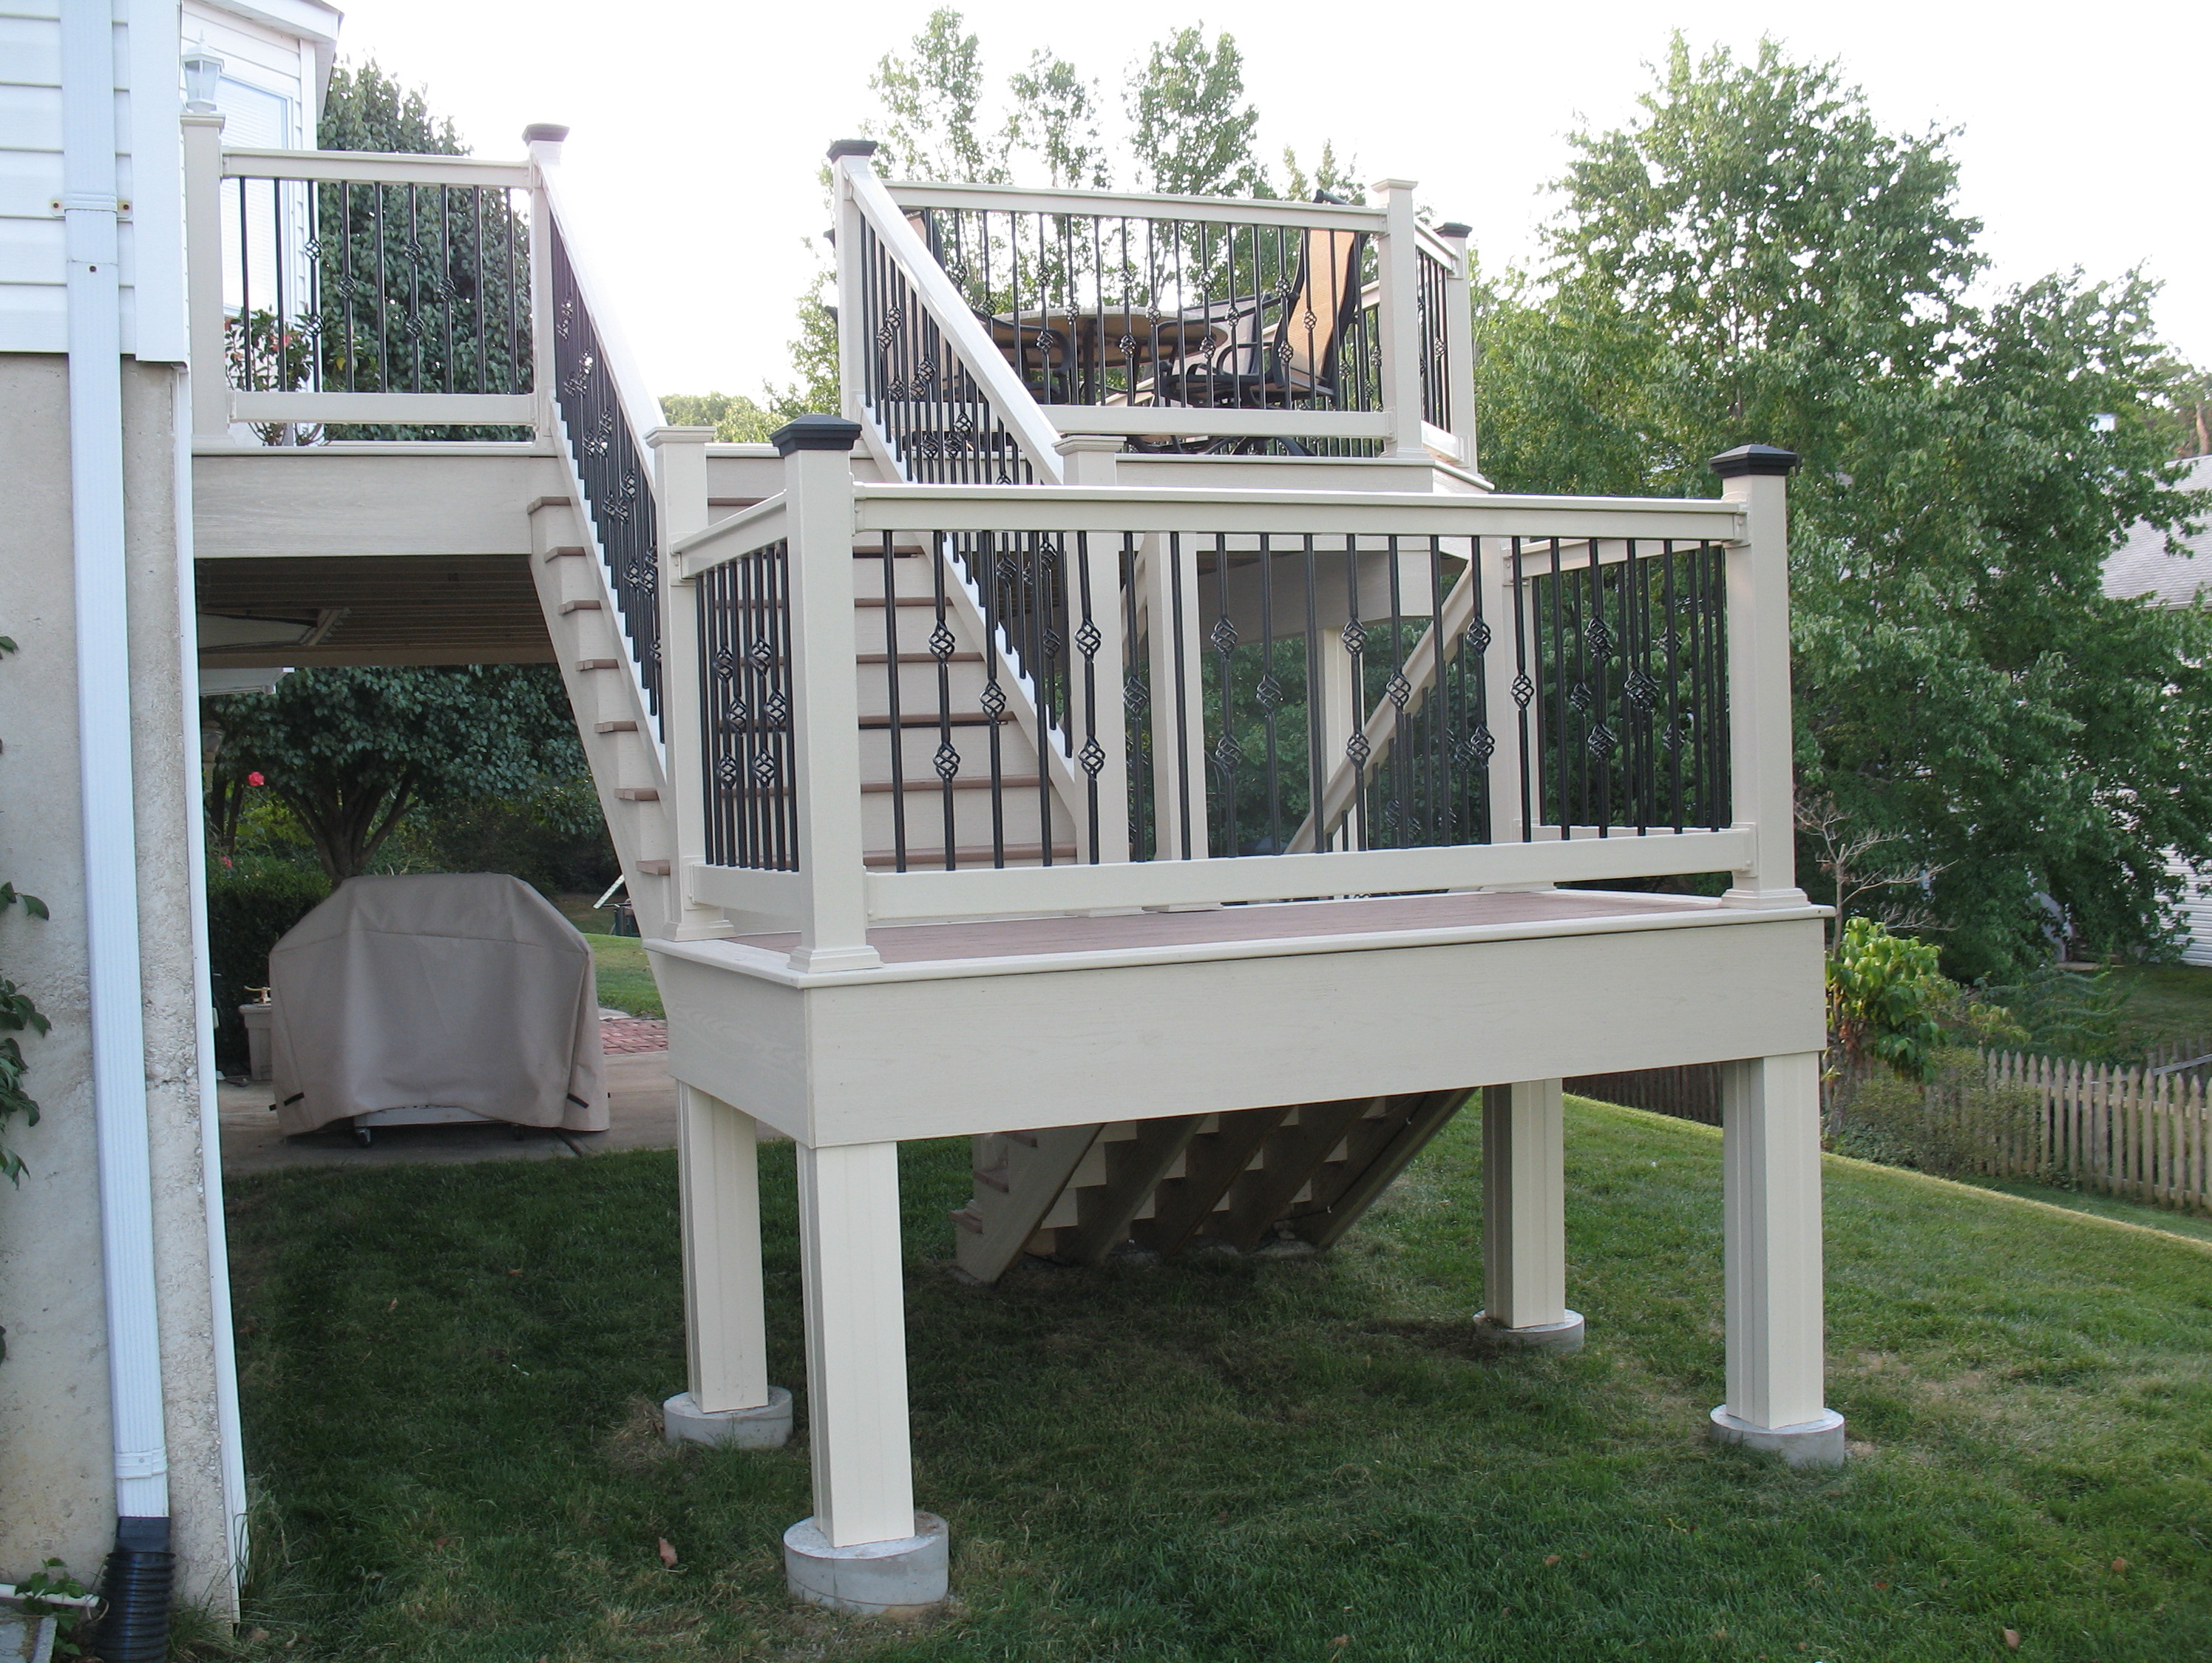 Tom Thiel Chesterfield Fence And Deck Home Design Ideas